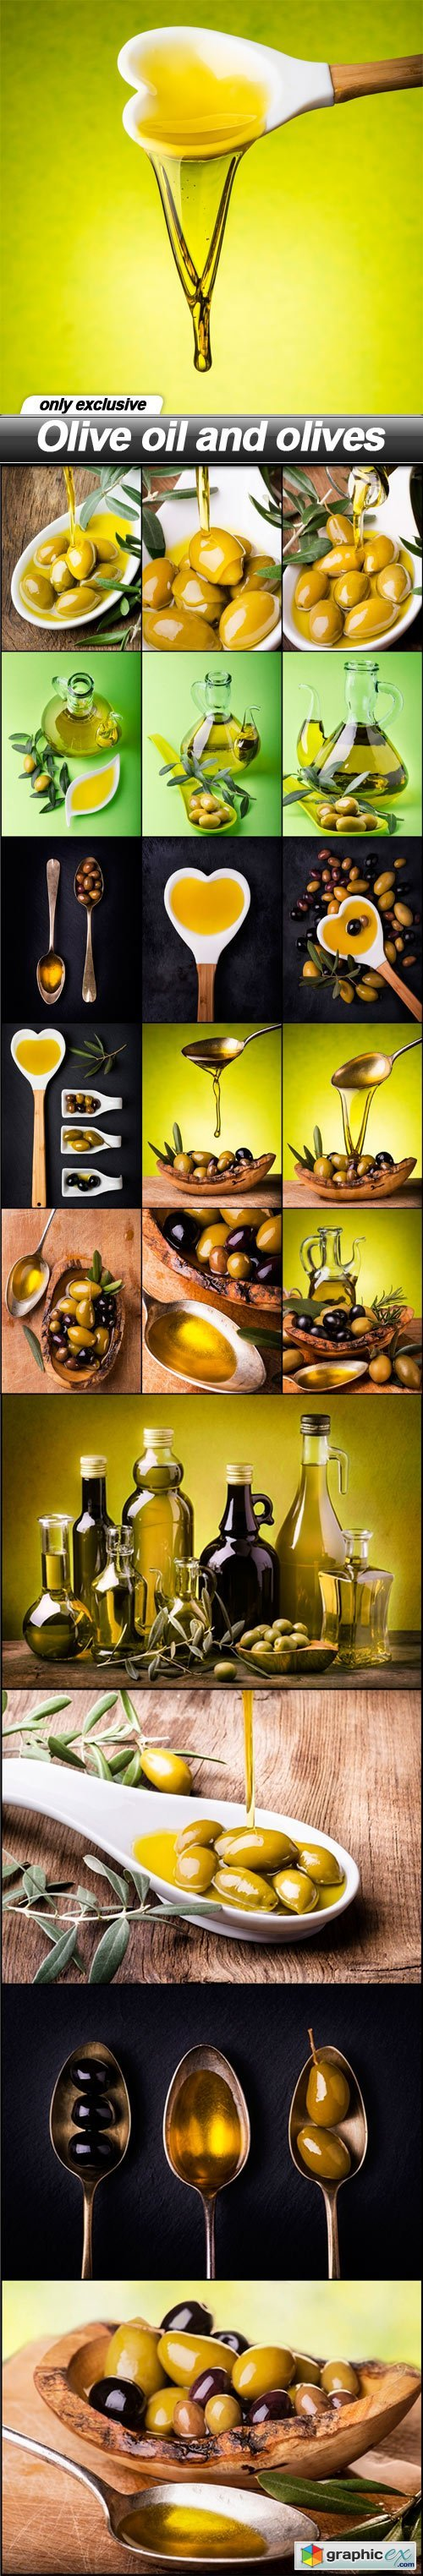 Olive oil and olives - 20 UHQ JPEG